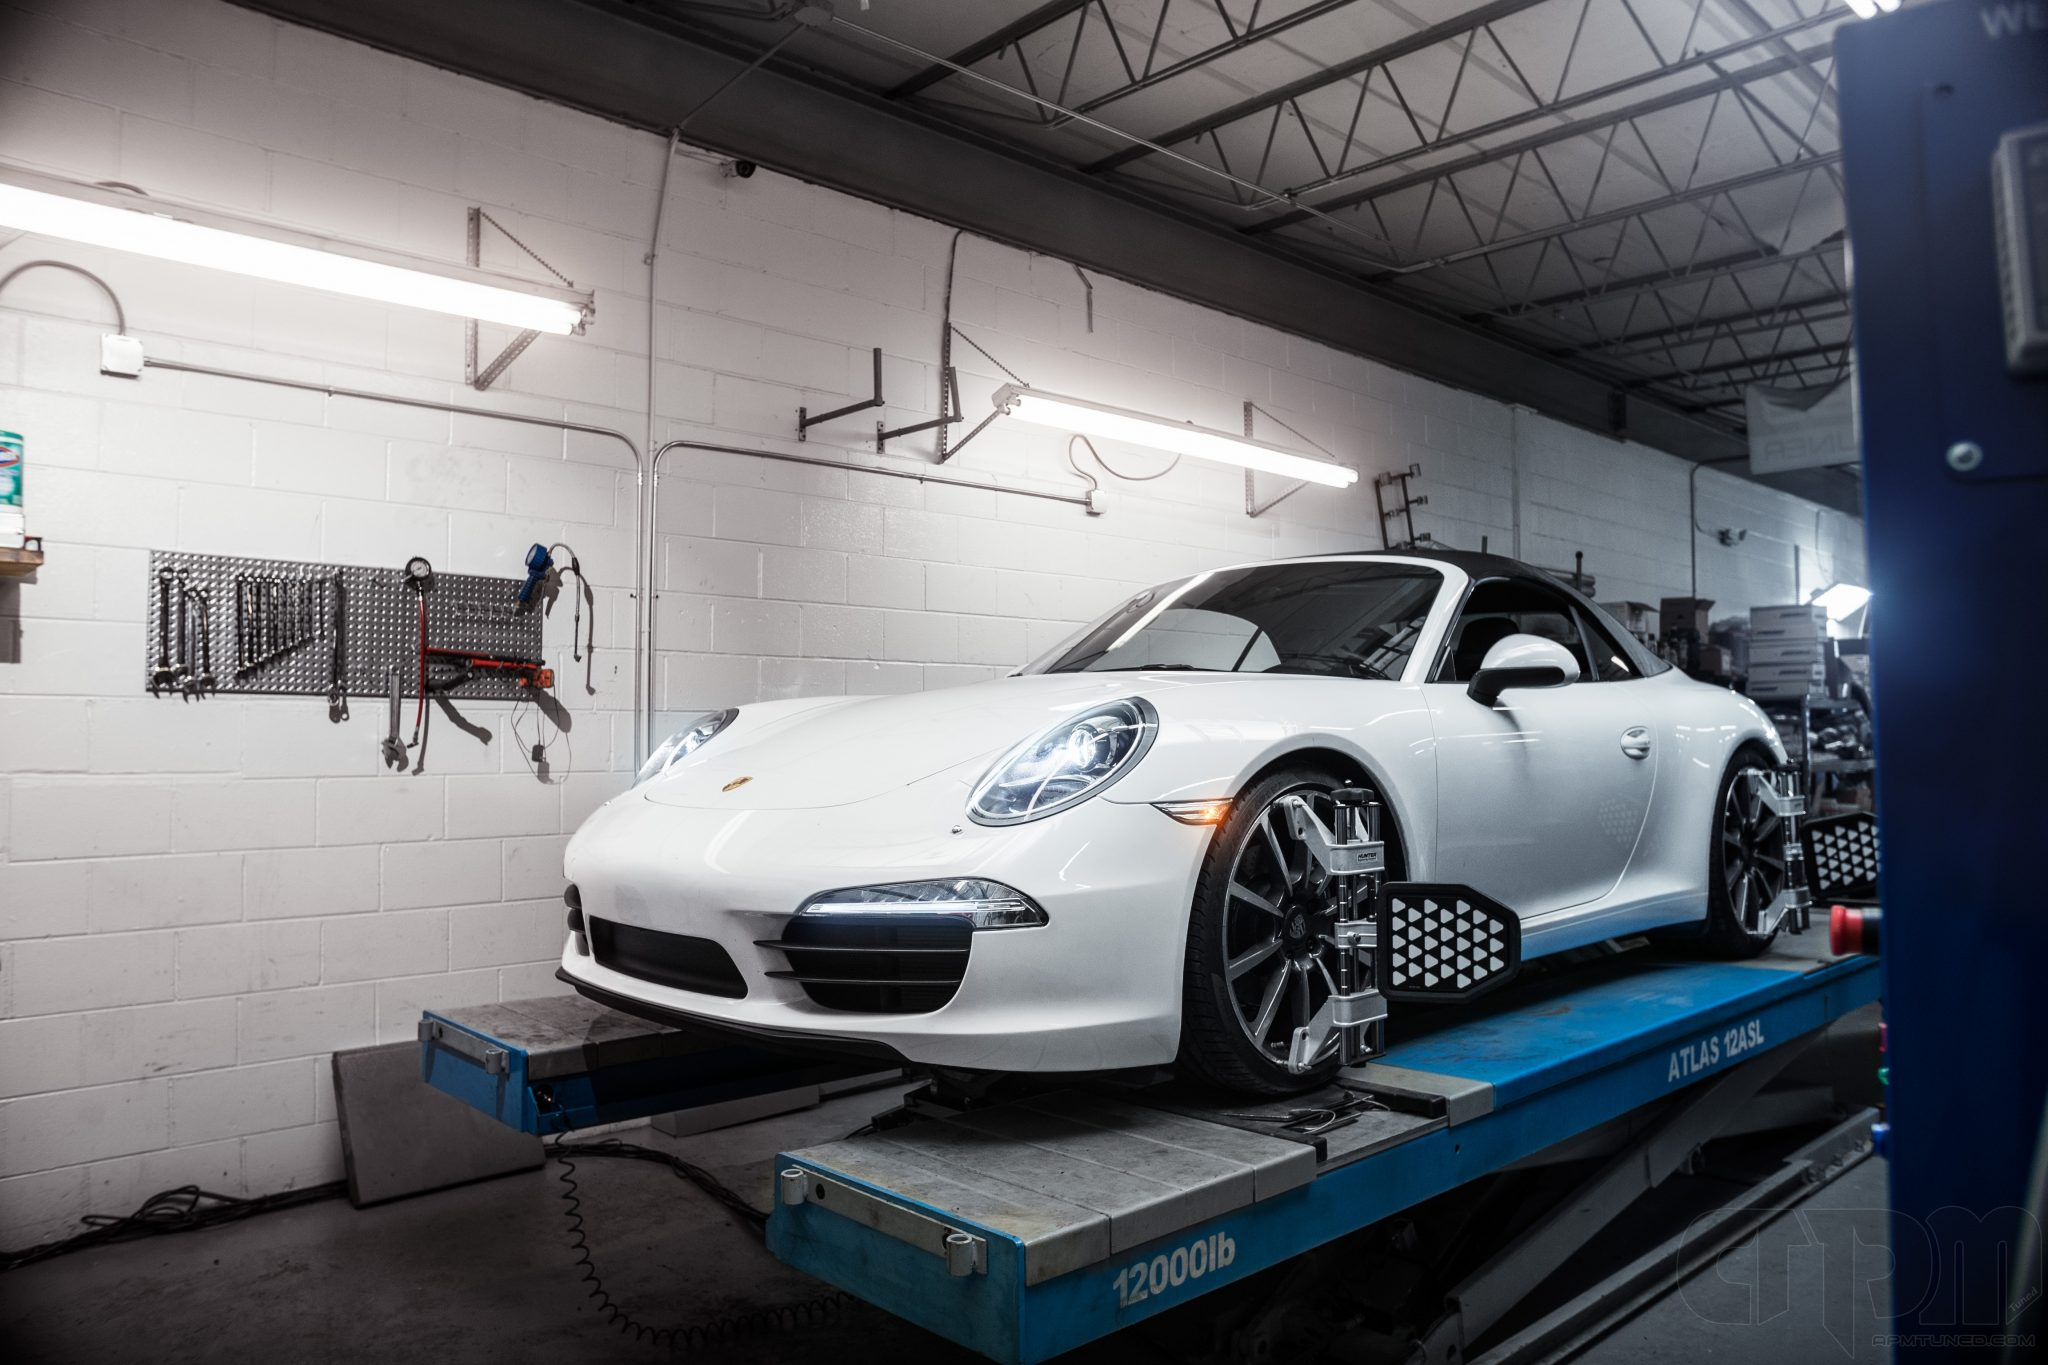 White Porsche convertible getting an alignment on our rack